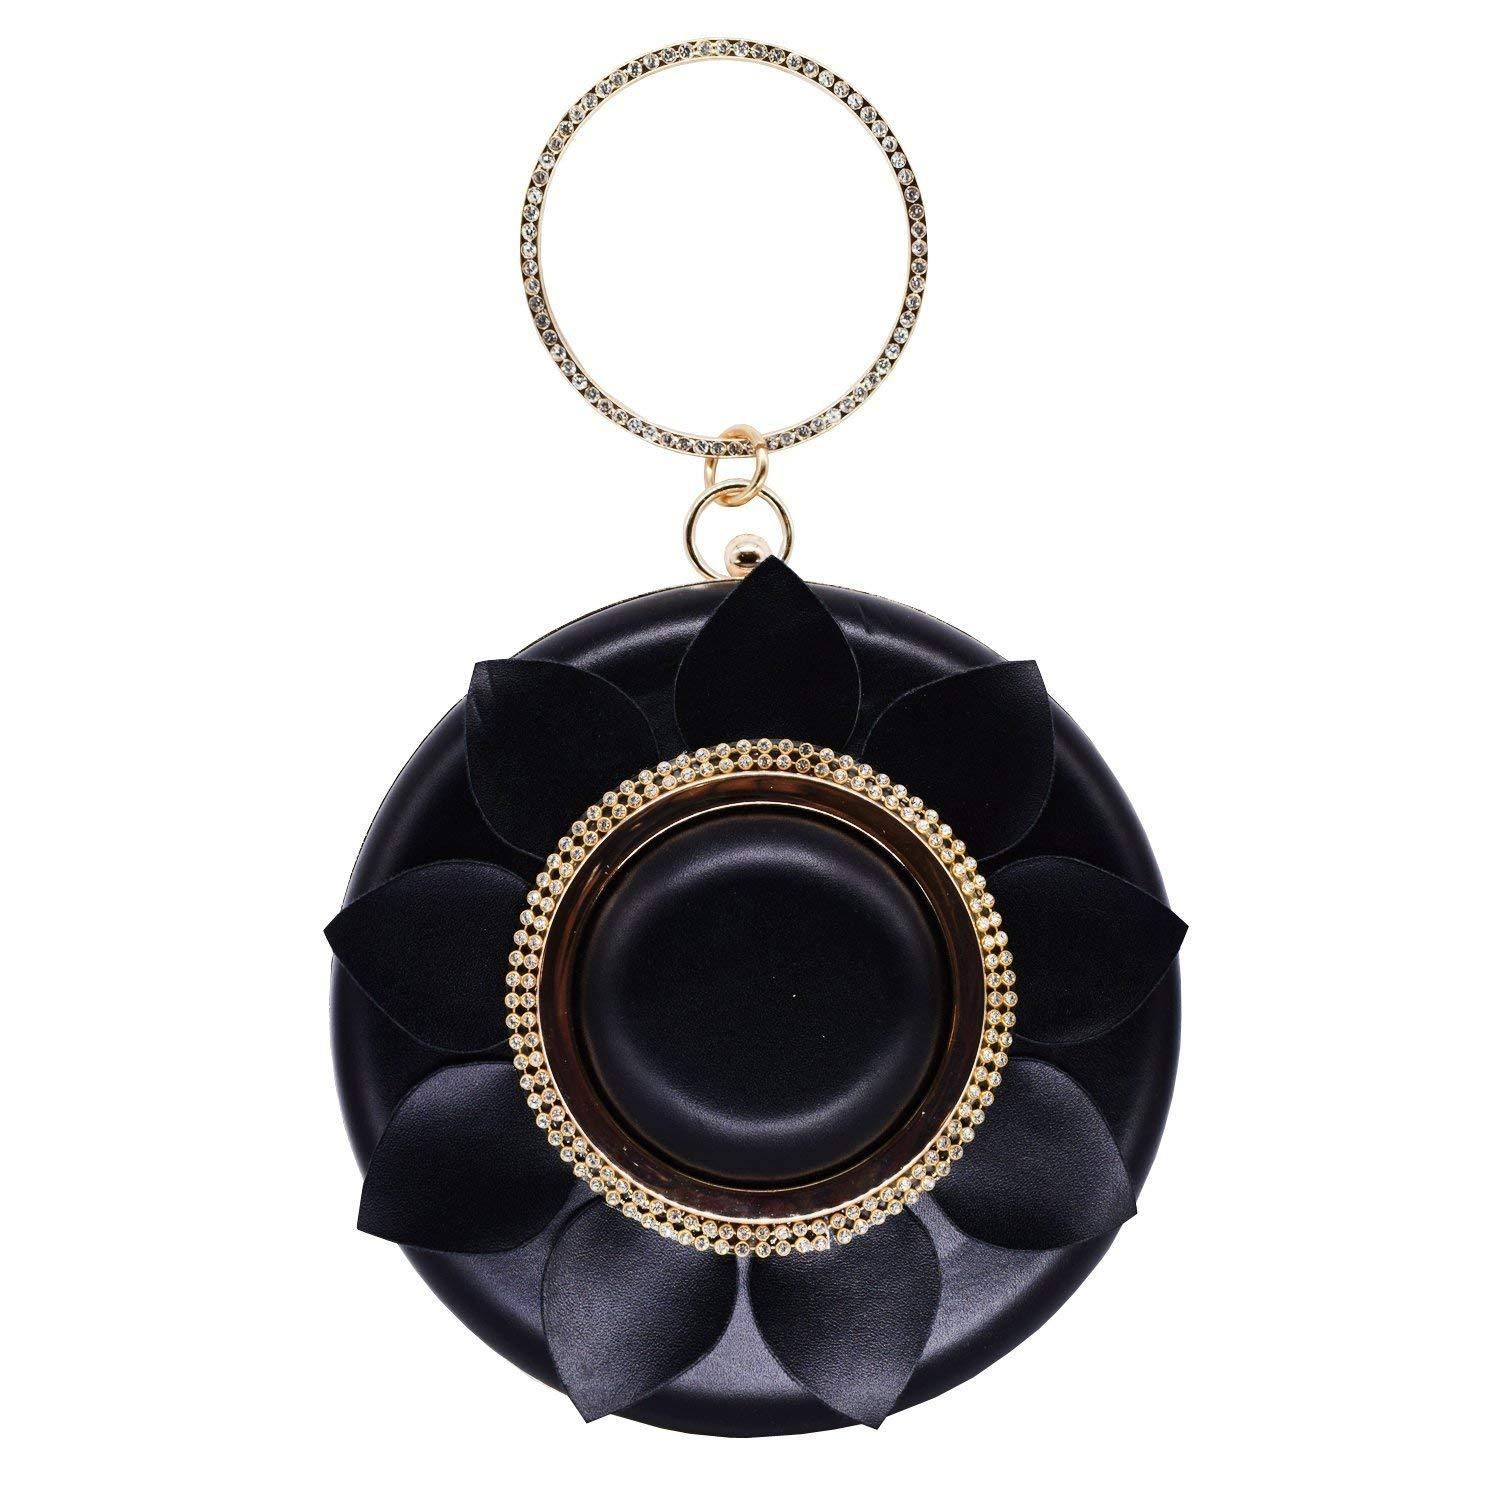 Round shape Diamond Studded Party wear Clutch - Bagaholics Gift